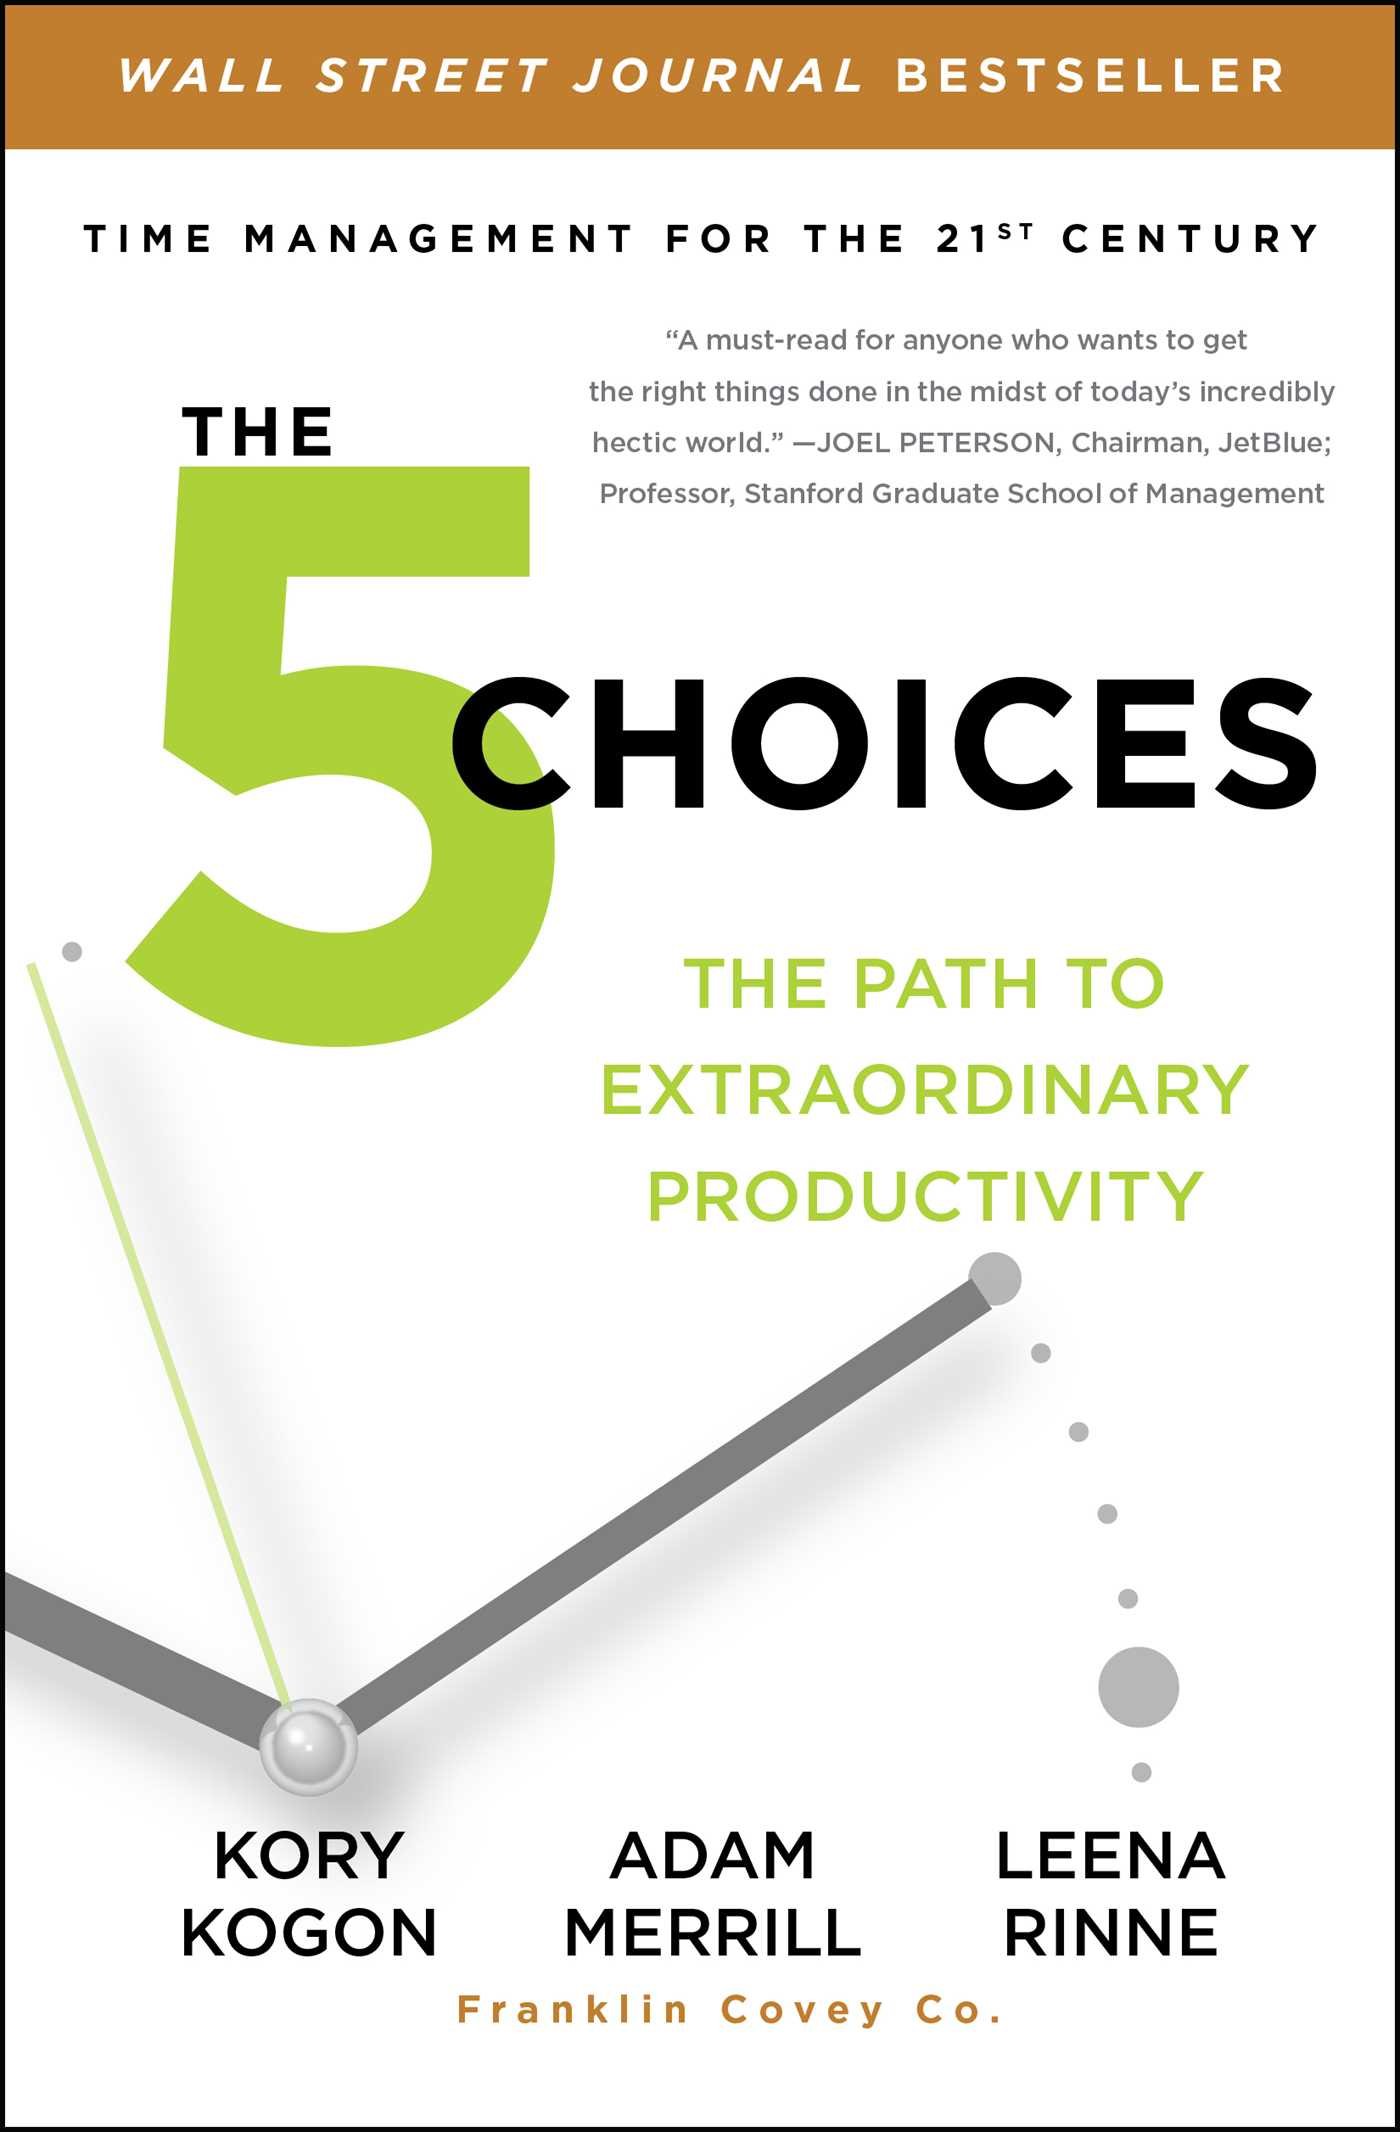 Download Ebook The 5 Choices by Kory Kogon Pdf